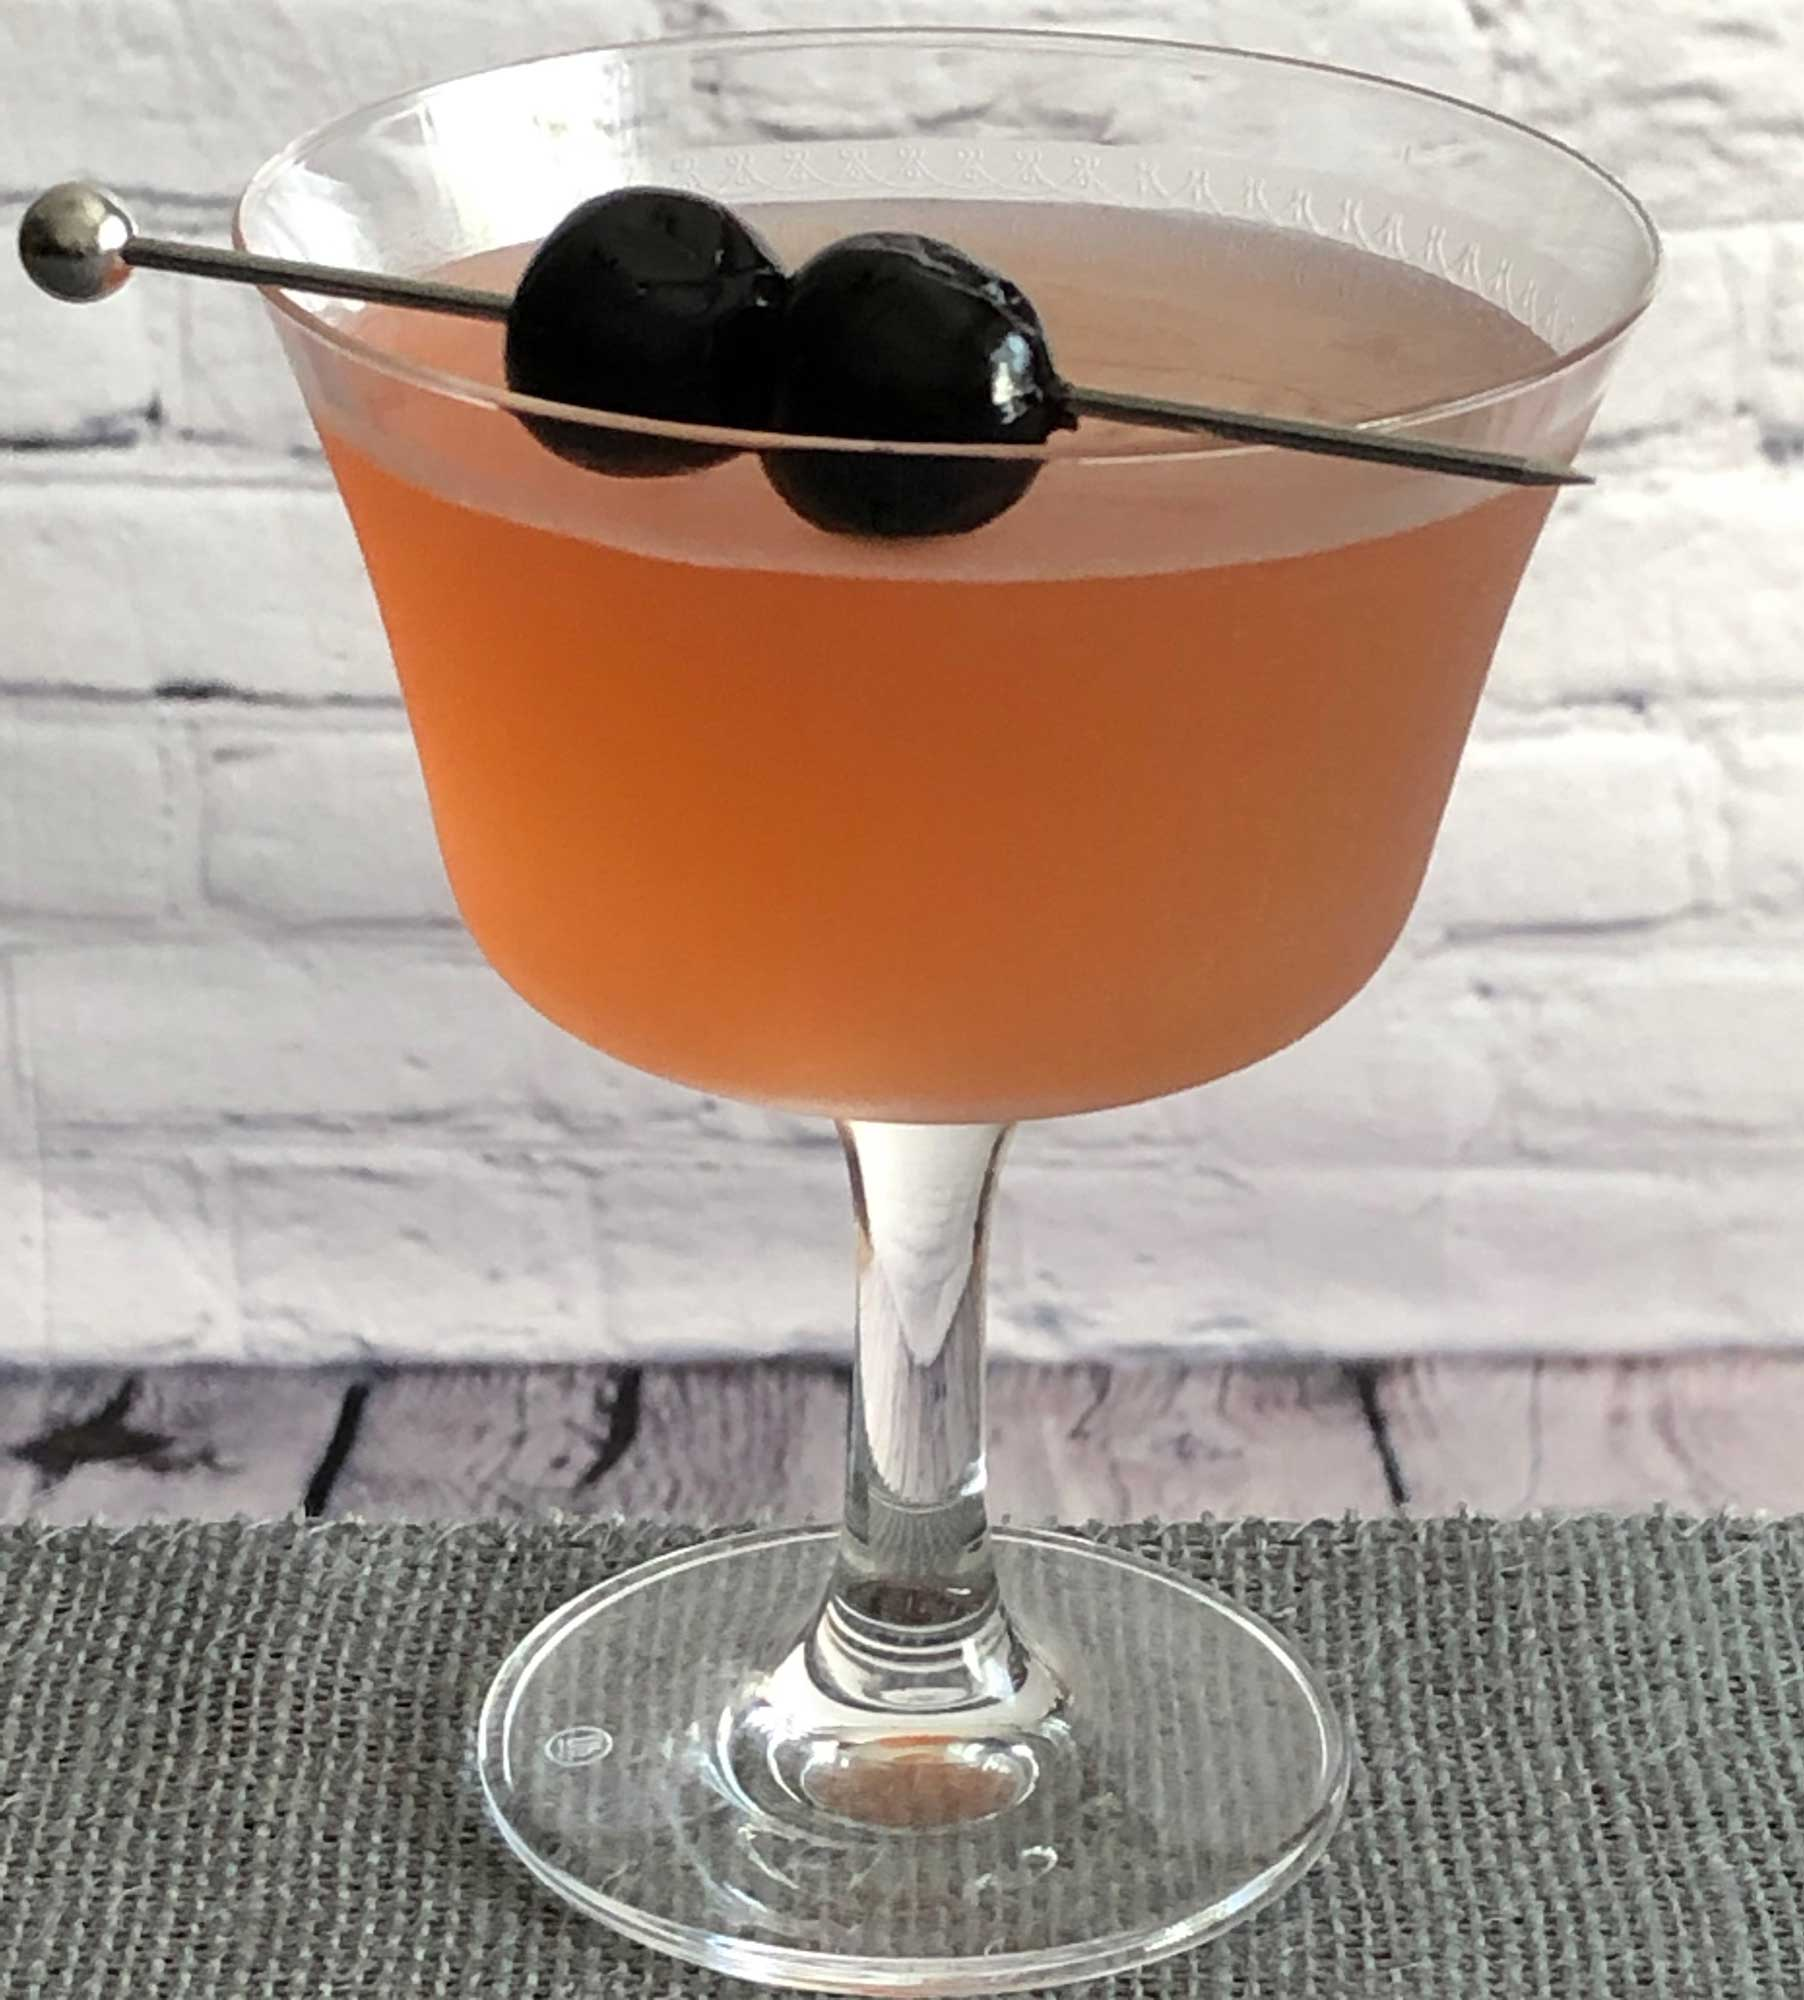 An example of the Admiral, the mixed drink (cocktail), variation of a drink from David Embury, The Fine Art of Mixing Drinks, featuring Hayman's London Dry Gin, Rothman & Winter Orchard Cherry Liqueur, and lime juice; photo by Lee Edwards